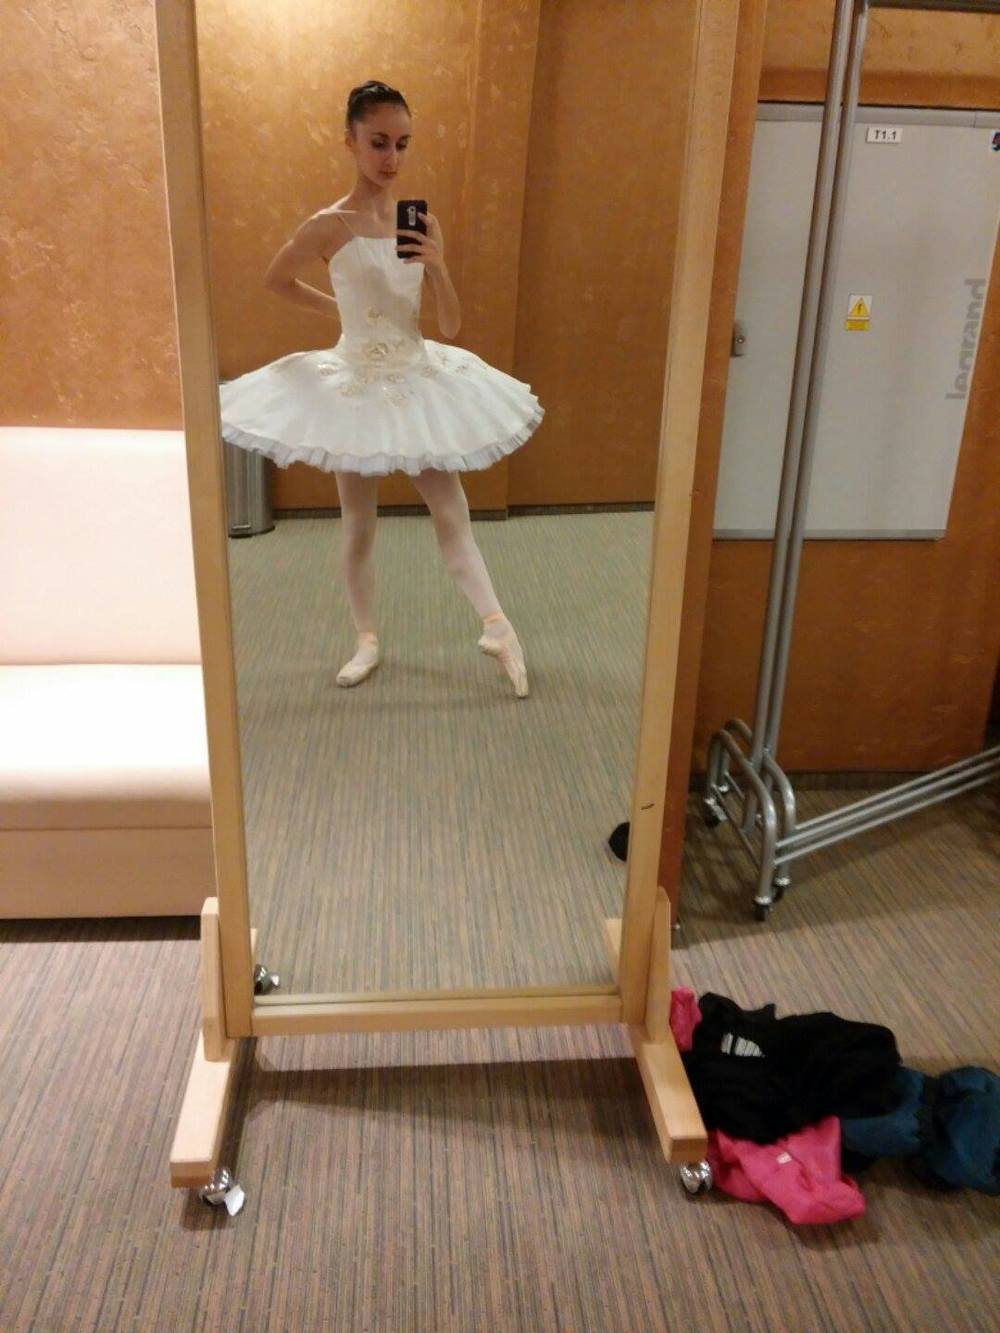 Corinne in a borrowed tutu for the Don Quixote variation she and Julianna performed tonight.